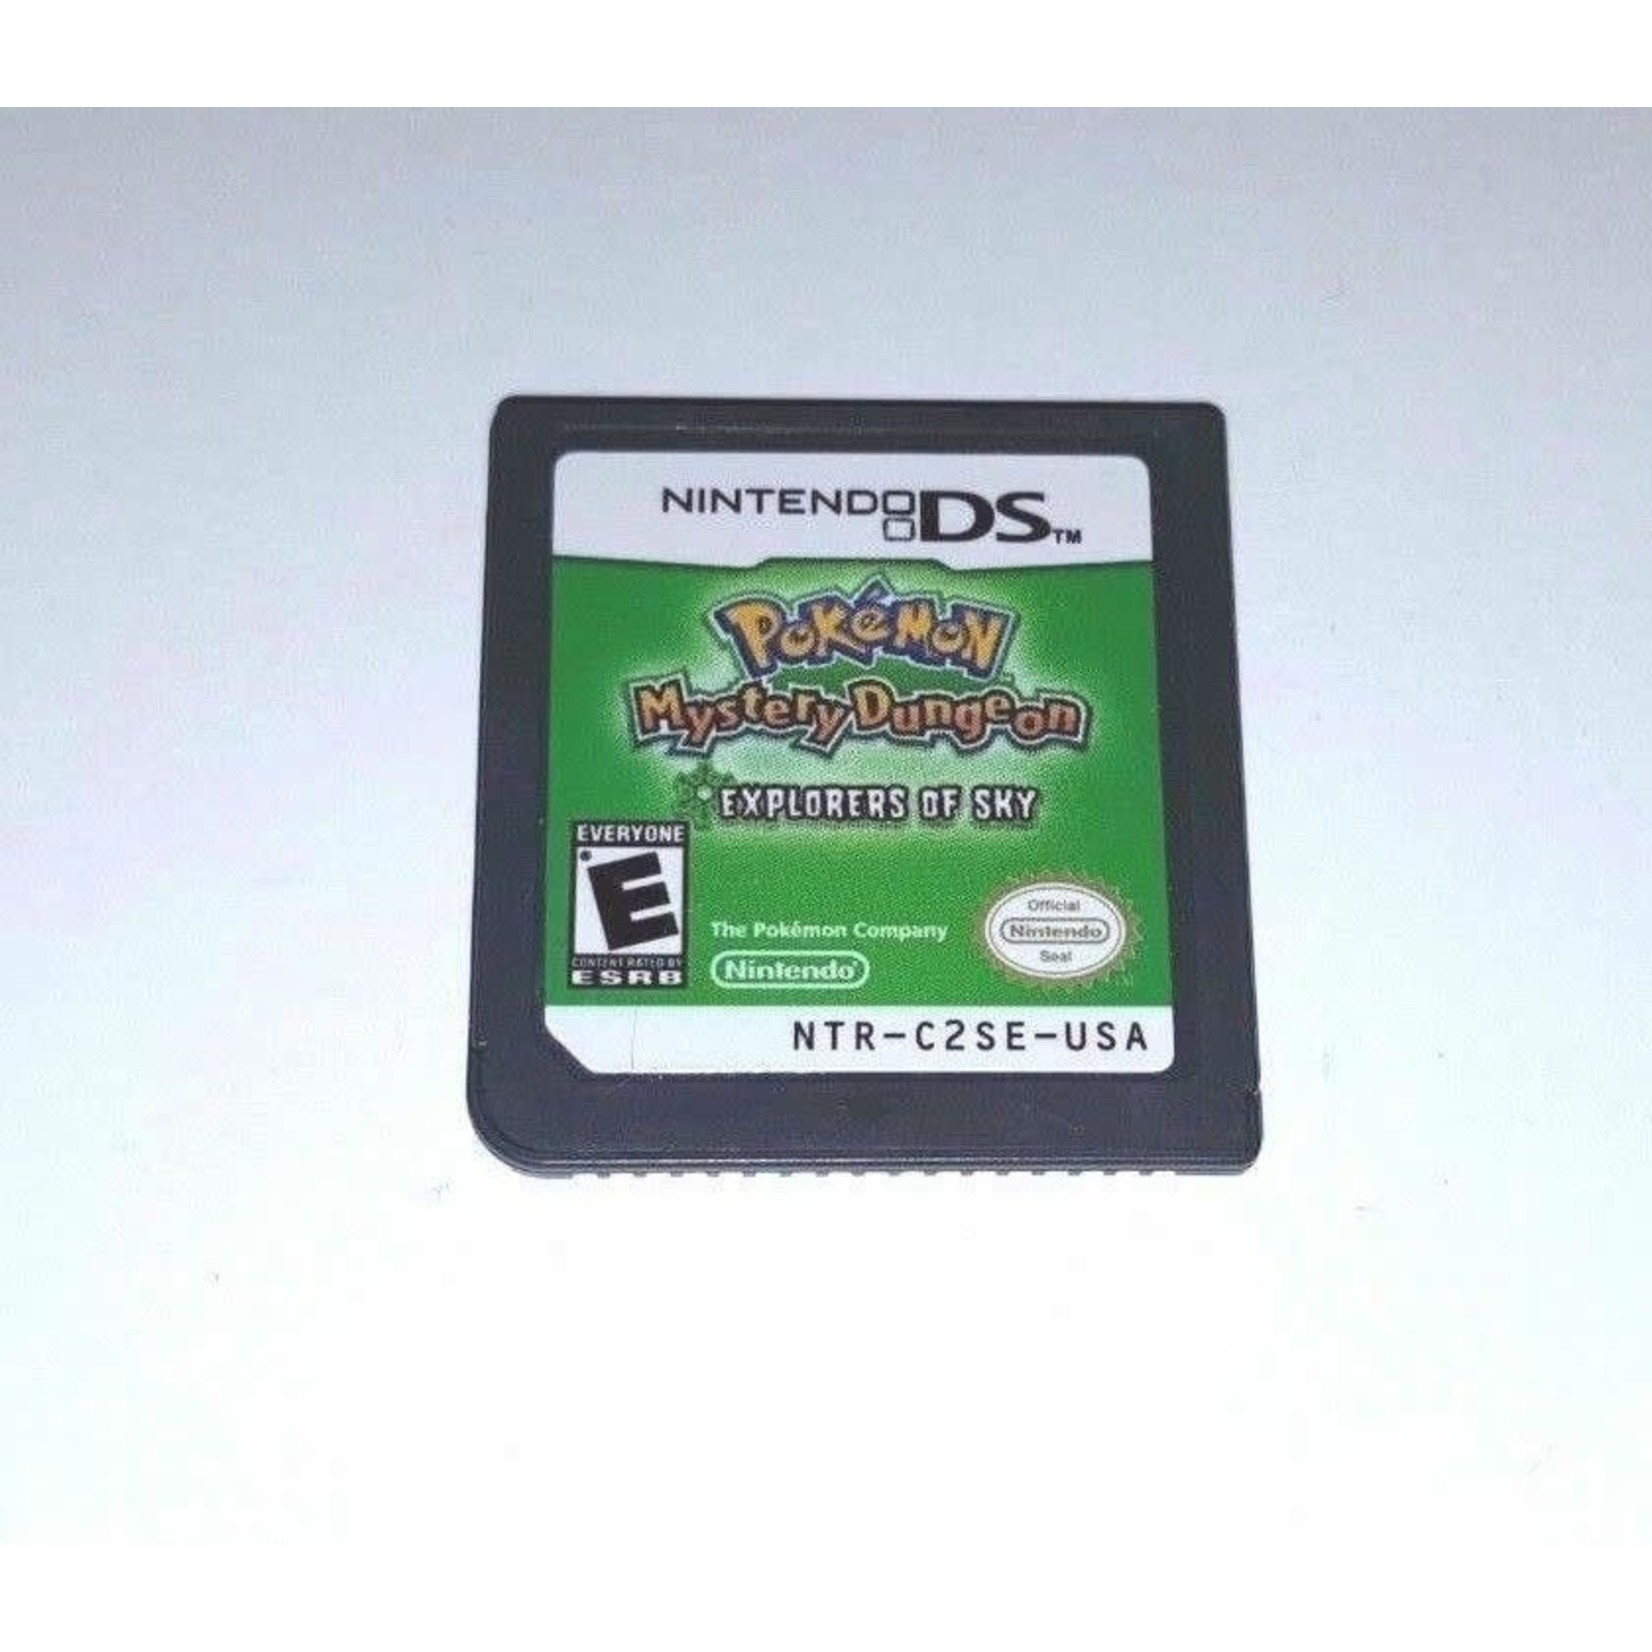 DSU-POKEMON MYSTERY DUNGEON EXPLORERS OF SKY (CHIP ONLY)